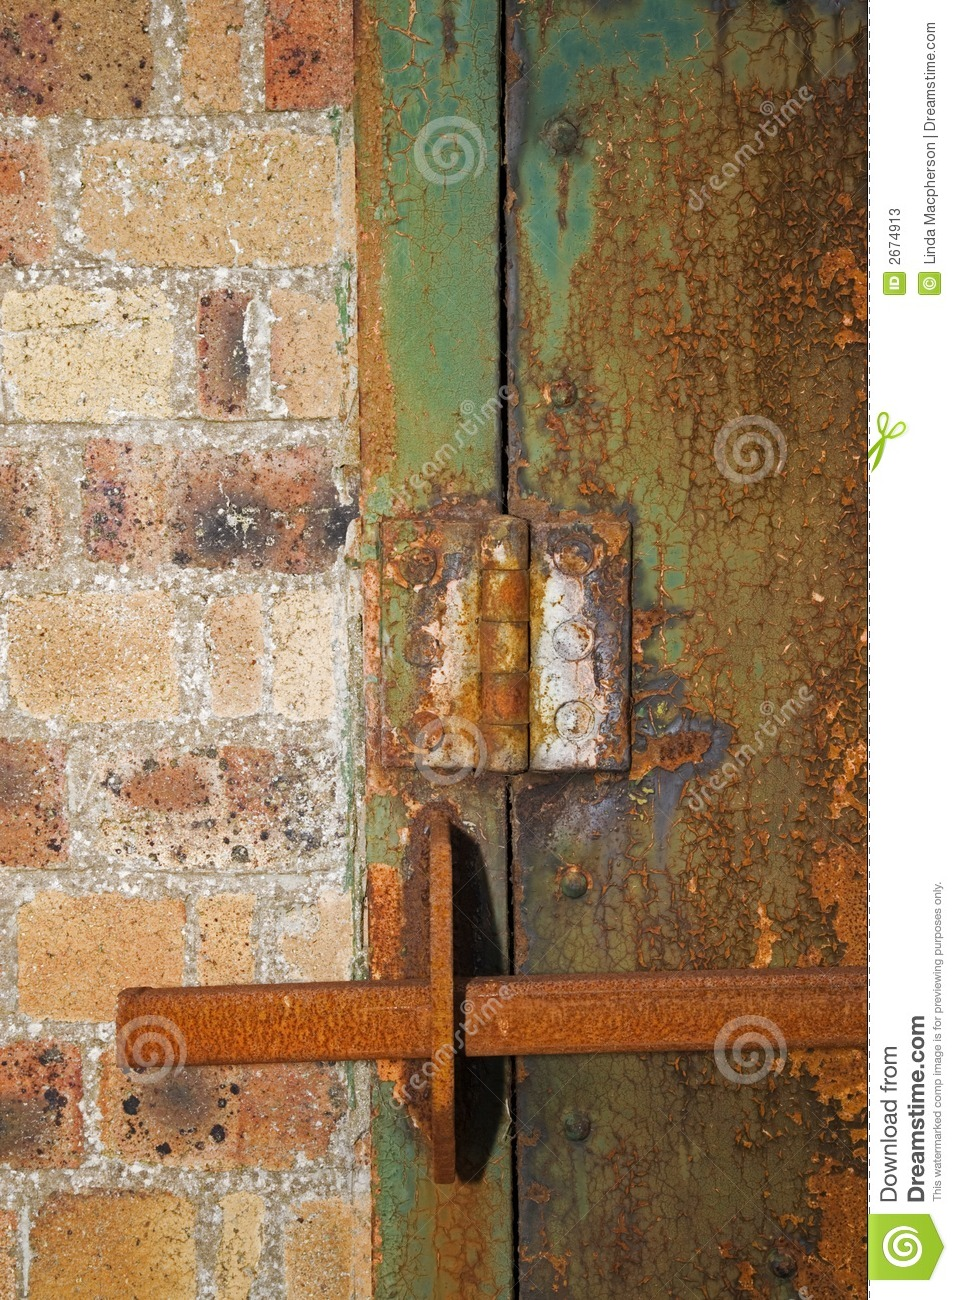 Barred Door Stock Photos - Image: 2674913